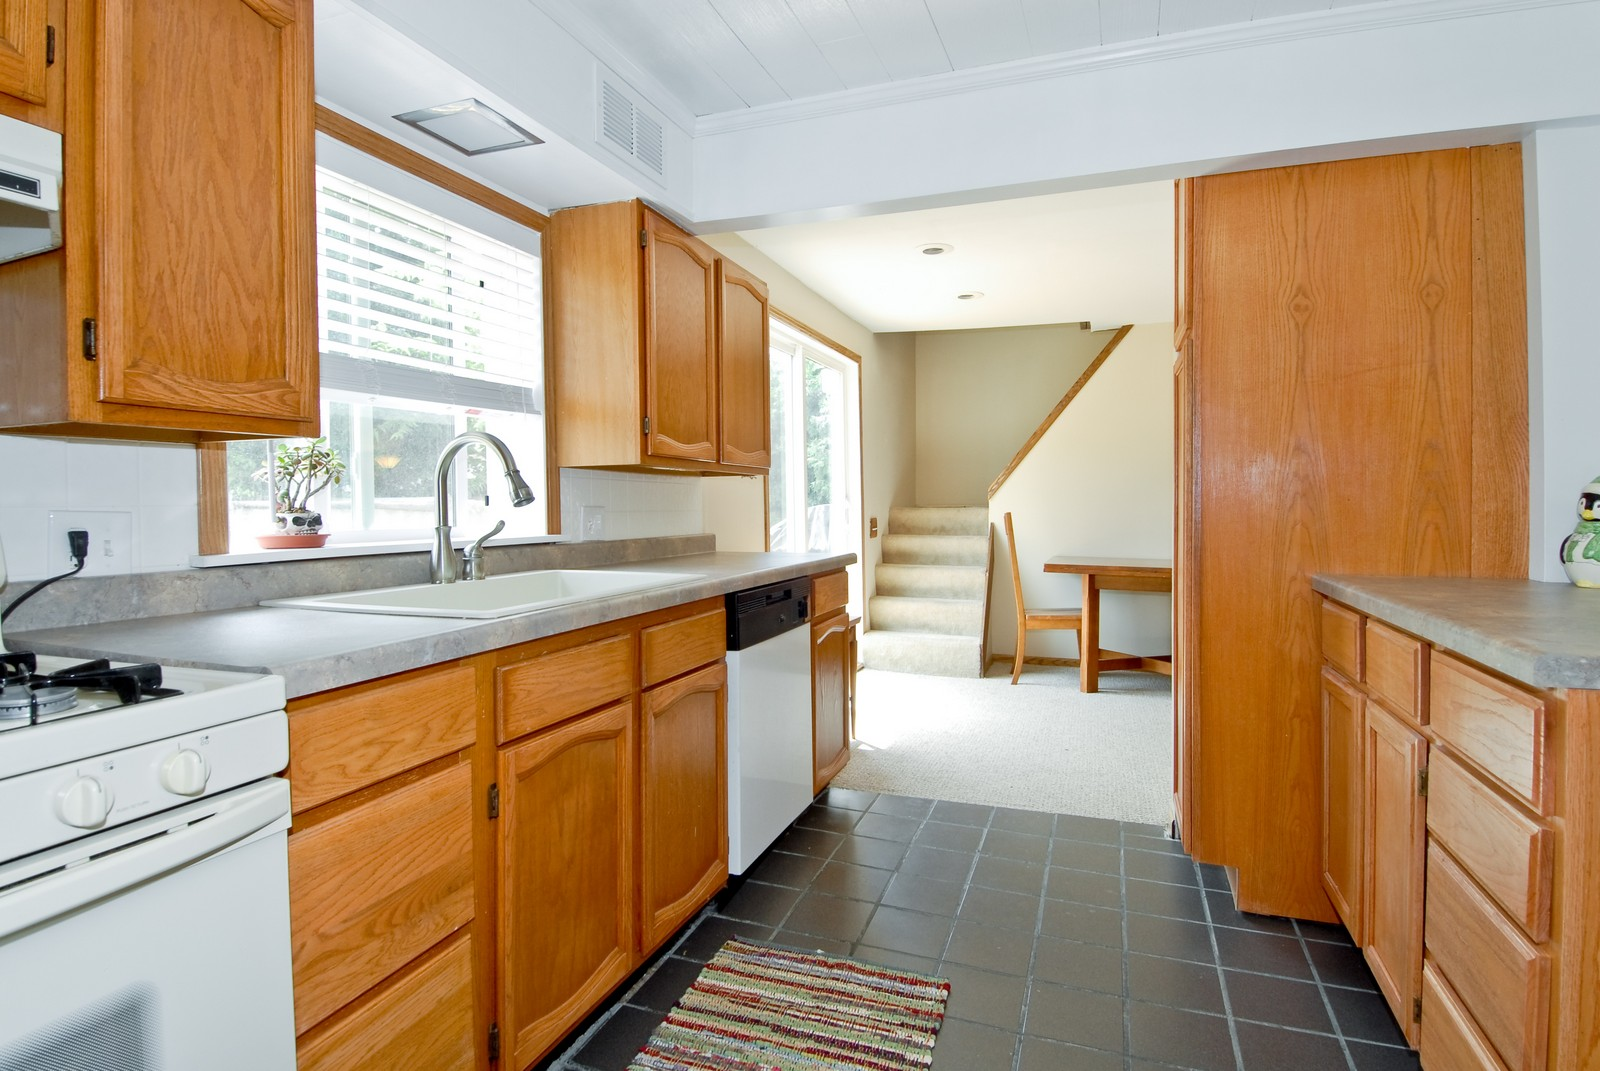 Real Estate Photography - 108 S 4th, Saint Charles, IL, 60174 - Kitchen